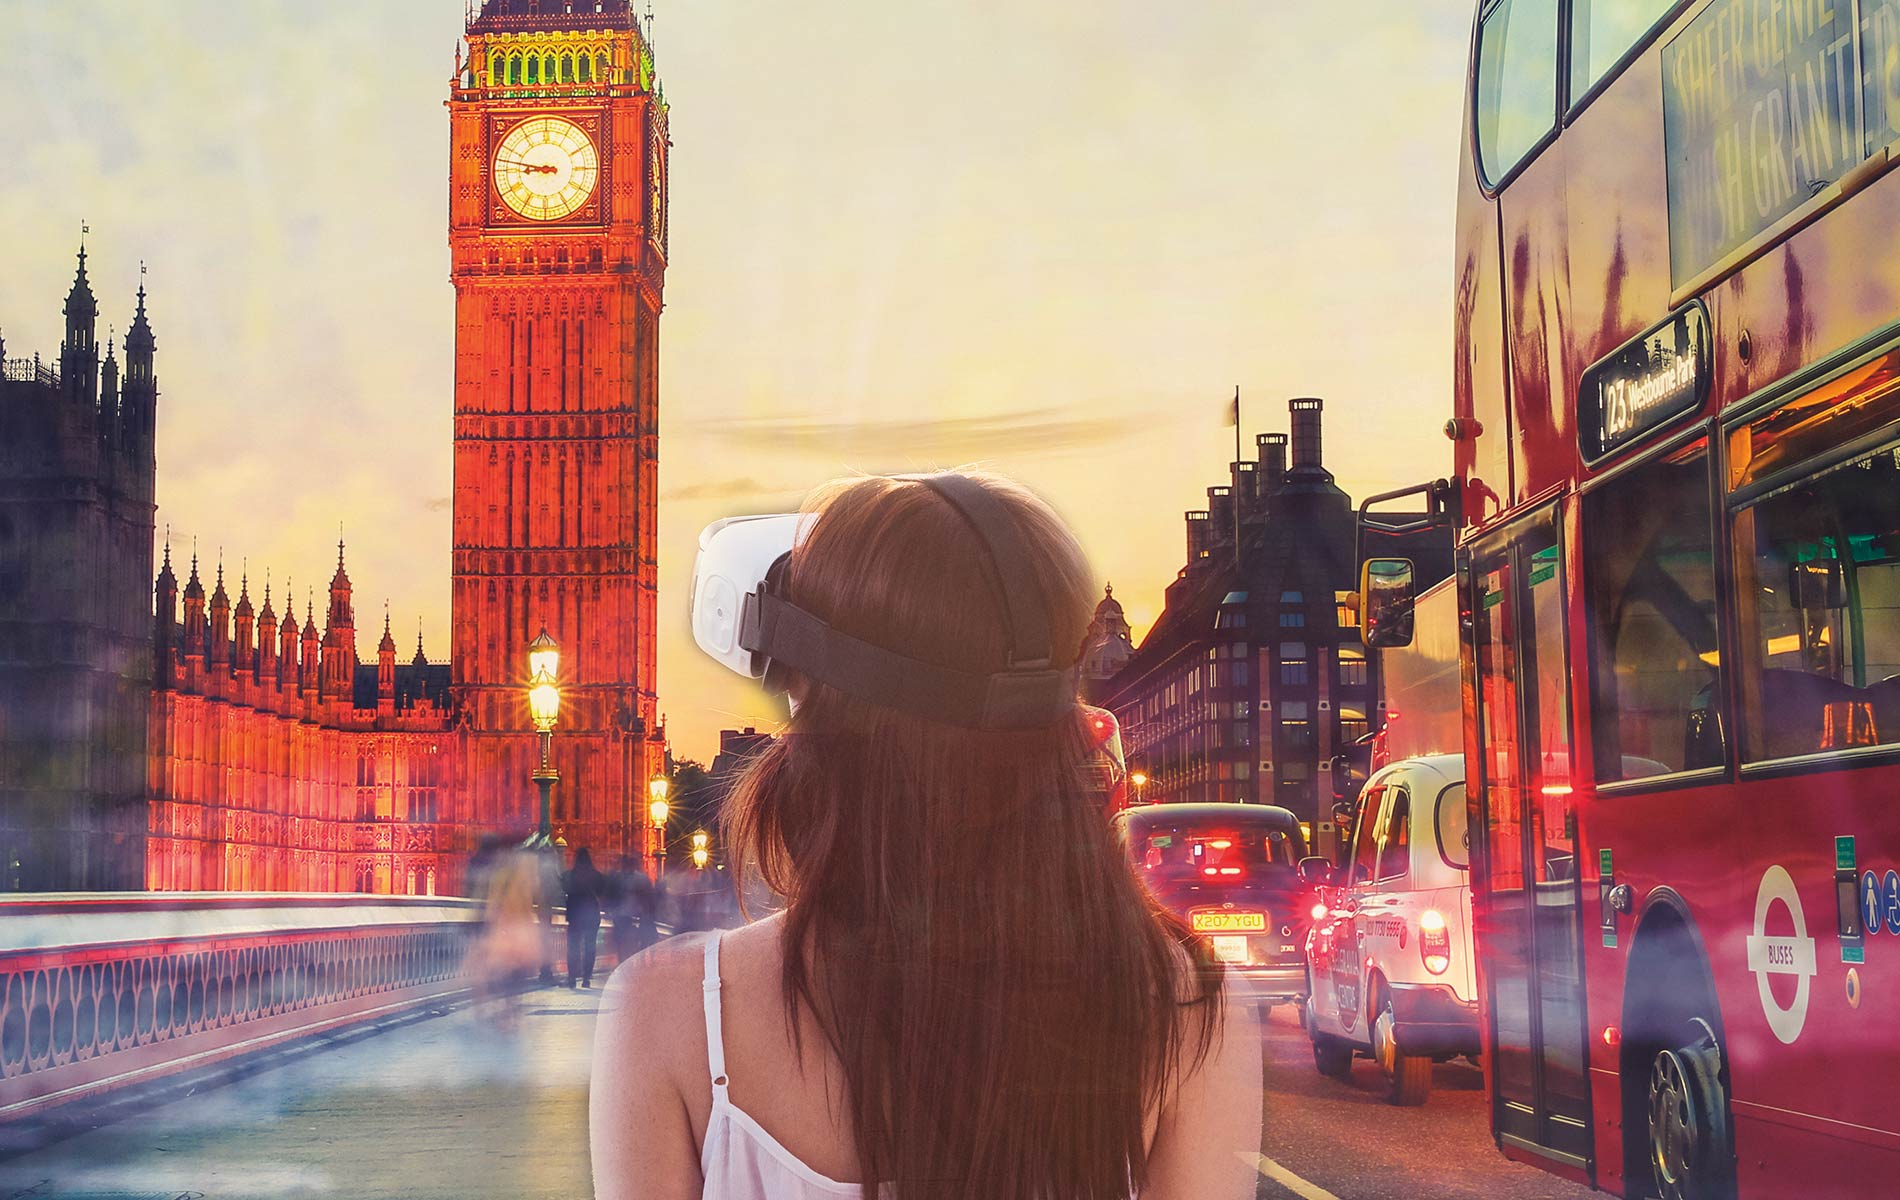 Virtual reality, girl wearing VR gear in virtual London